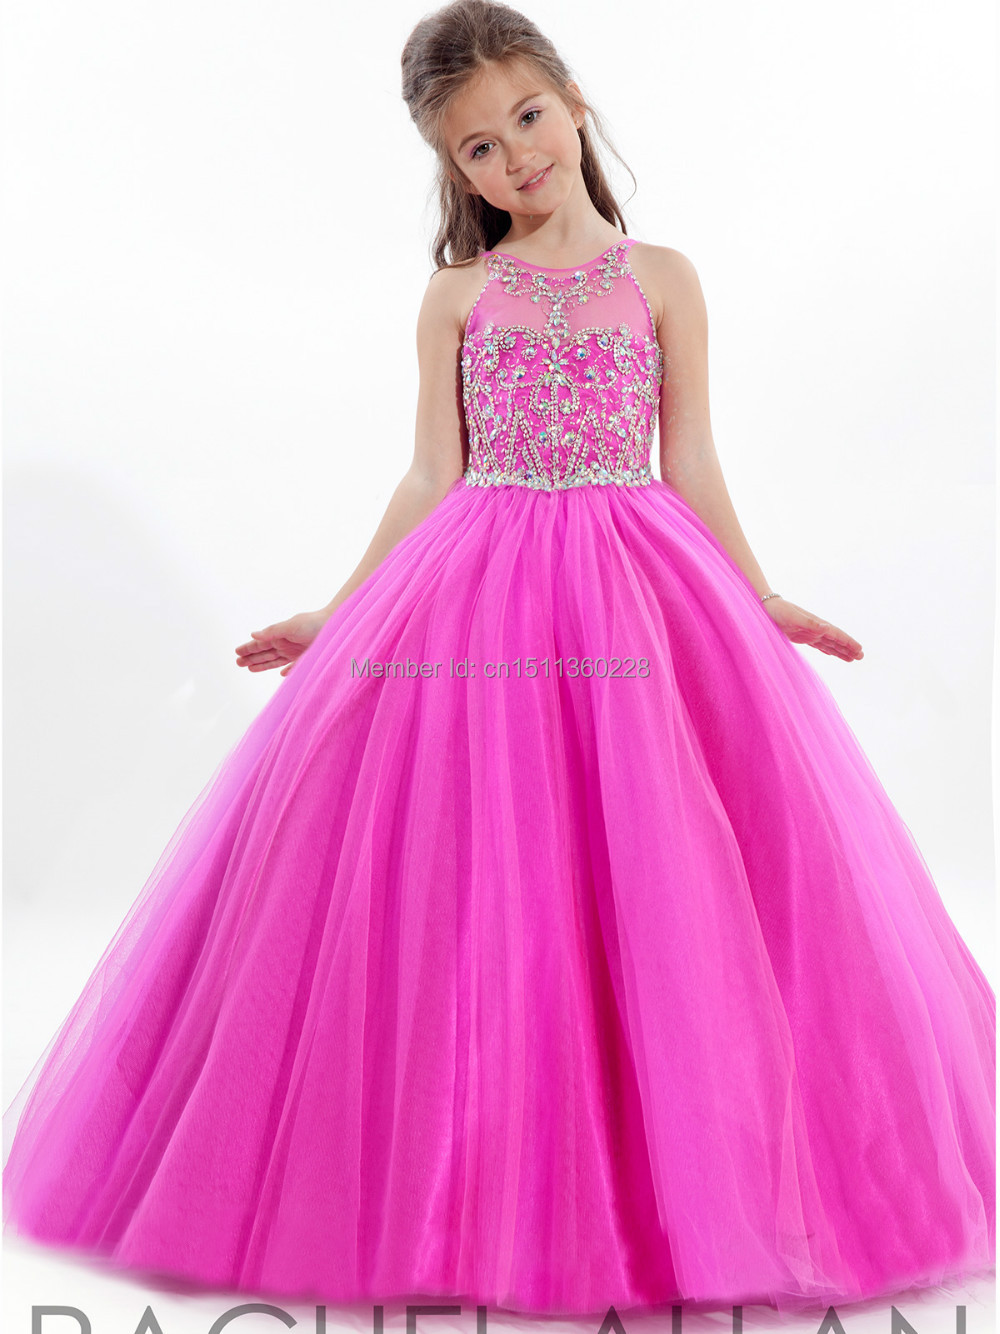 Lovely Gorgeous Handmade Beaded High Neck Girls Pageant Dresses ...